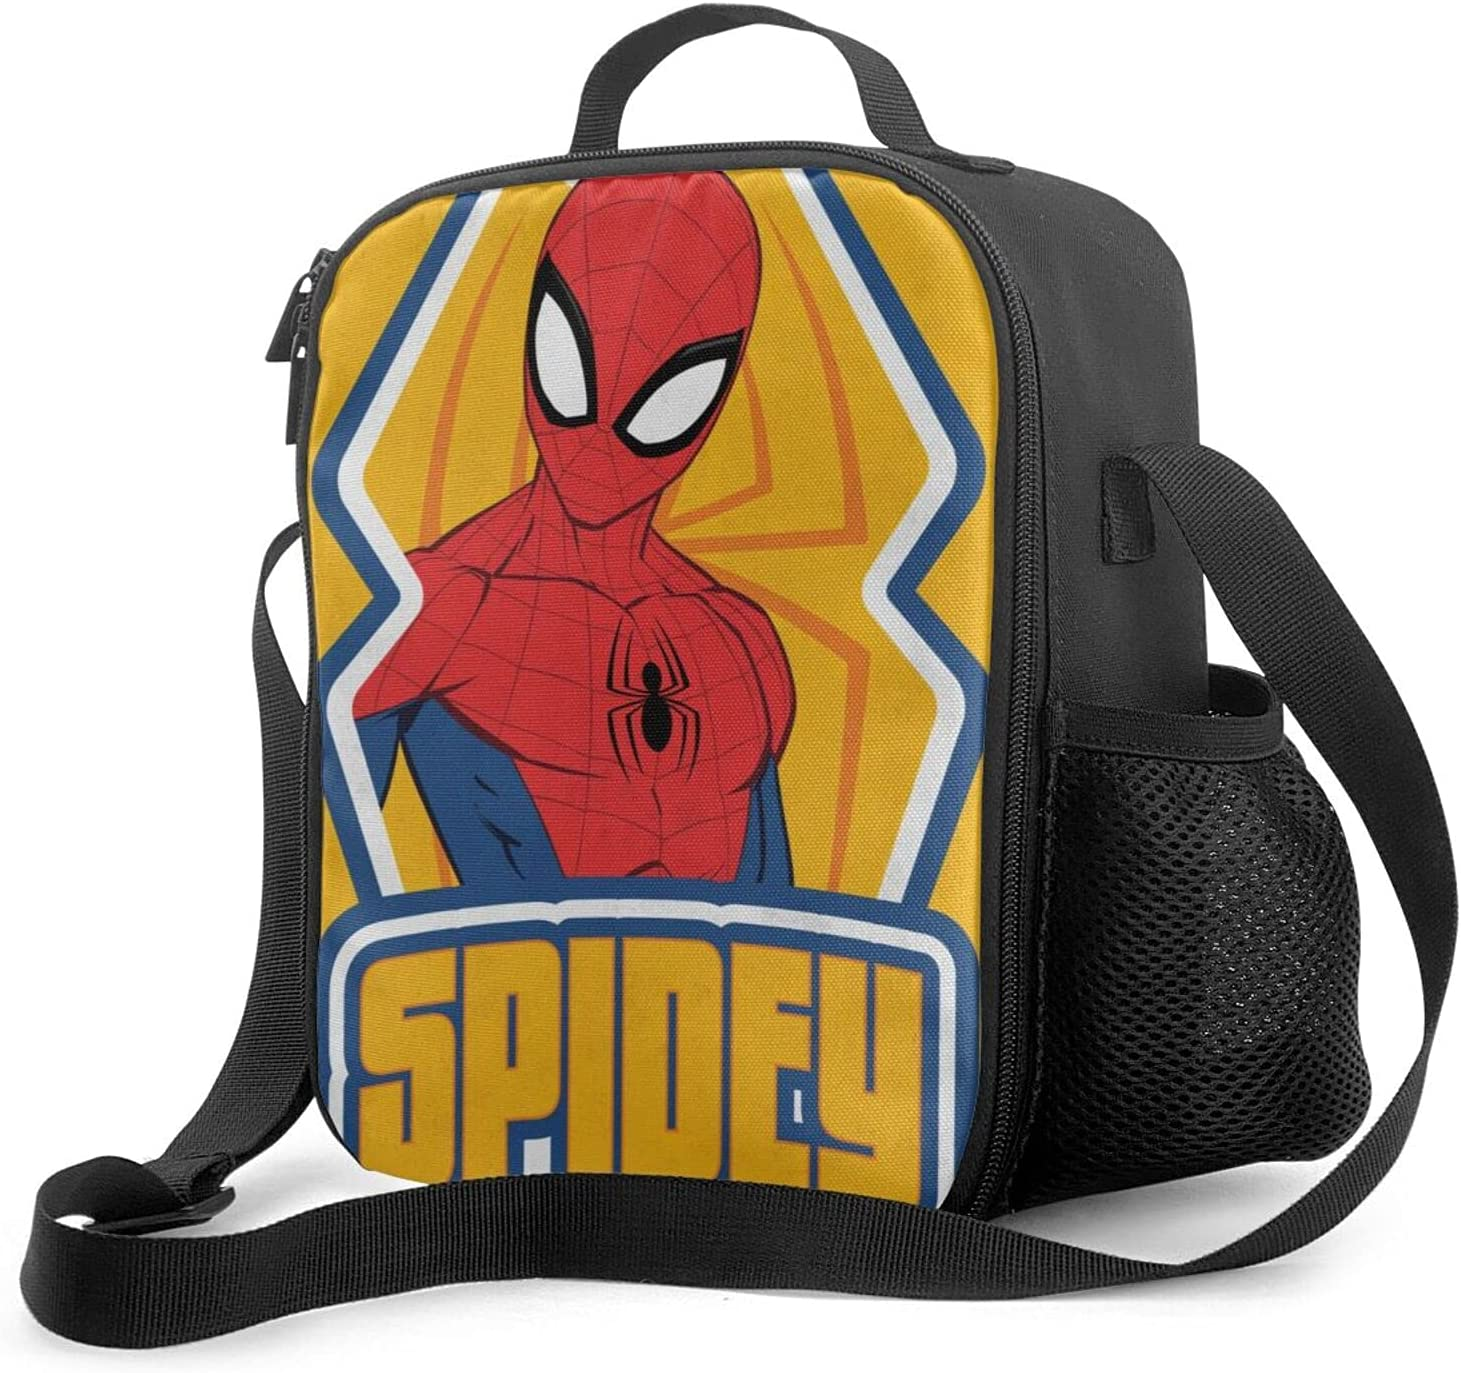 Reusable Lunch Bags Spi-der-man Insulated Lunch Bag, Leakproof Suitable Boys/Girls Lunch Box with Drinks Holder, Lightweight Food Warming Tote for Camping